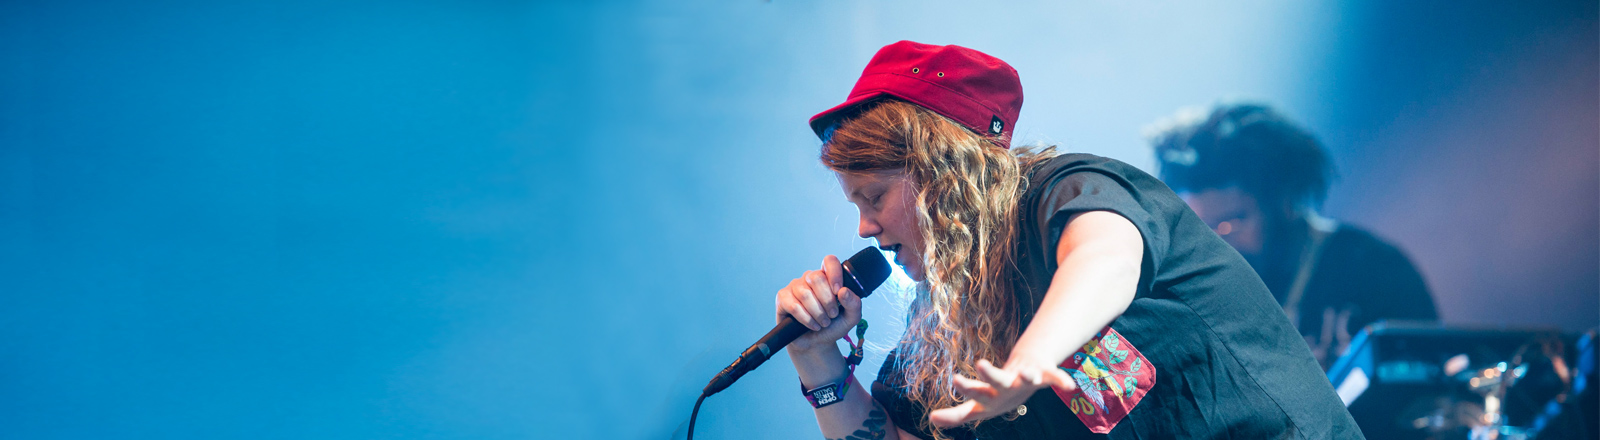 Kate Tempest beim Festival in St. Gallen 2015